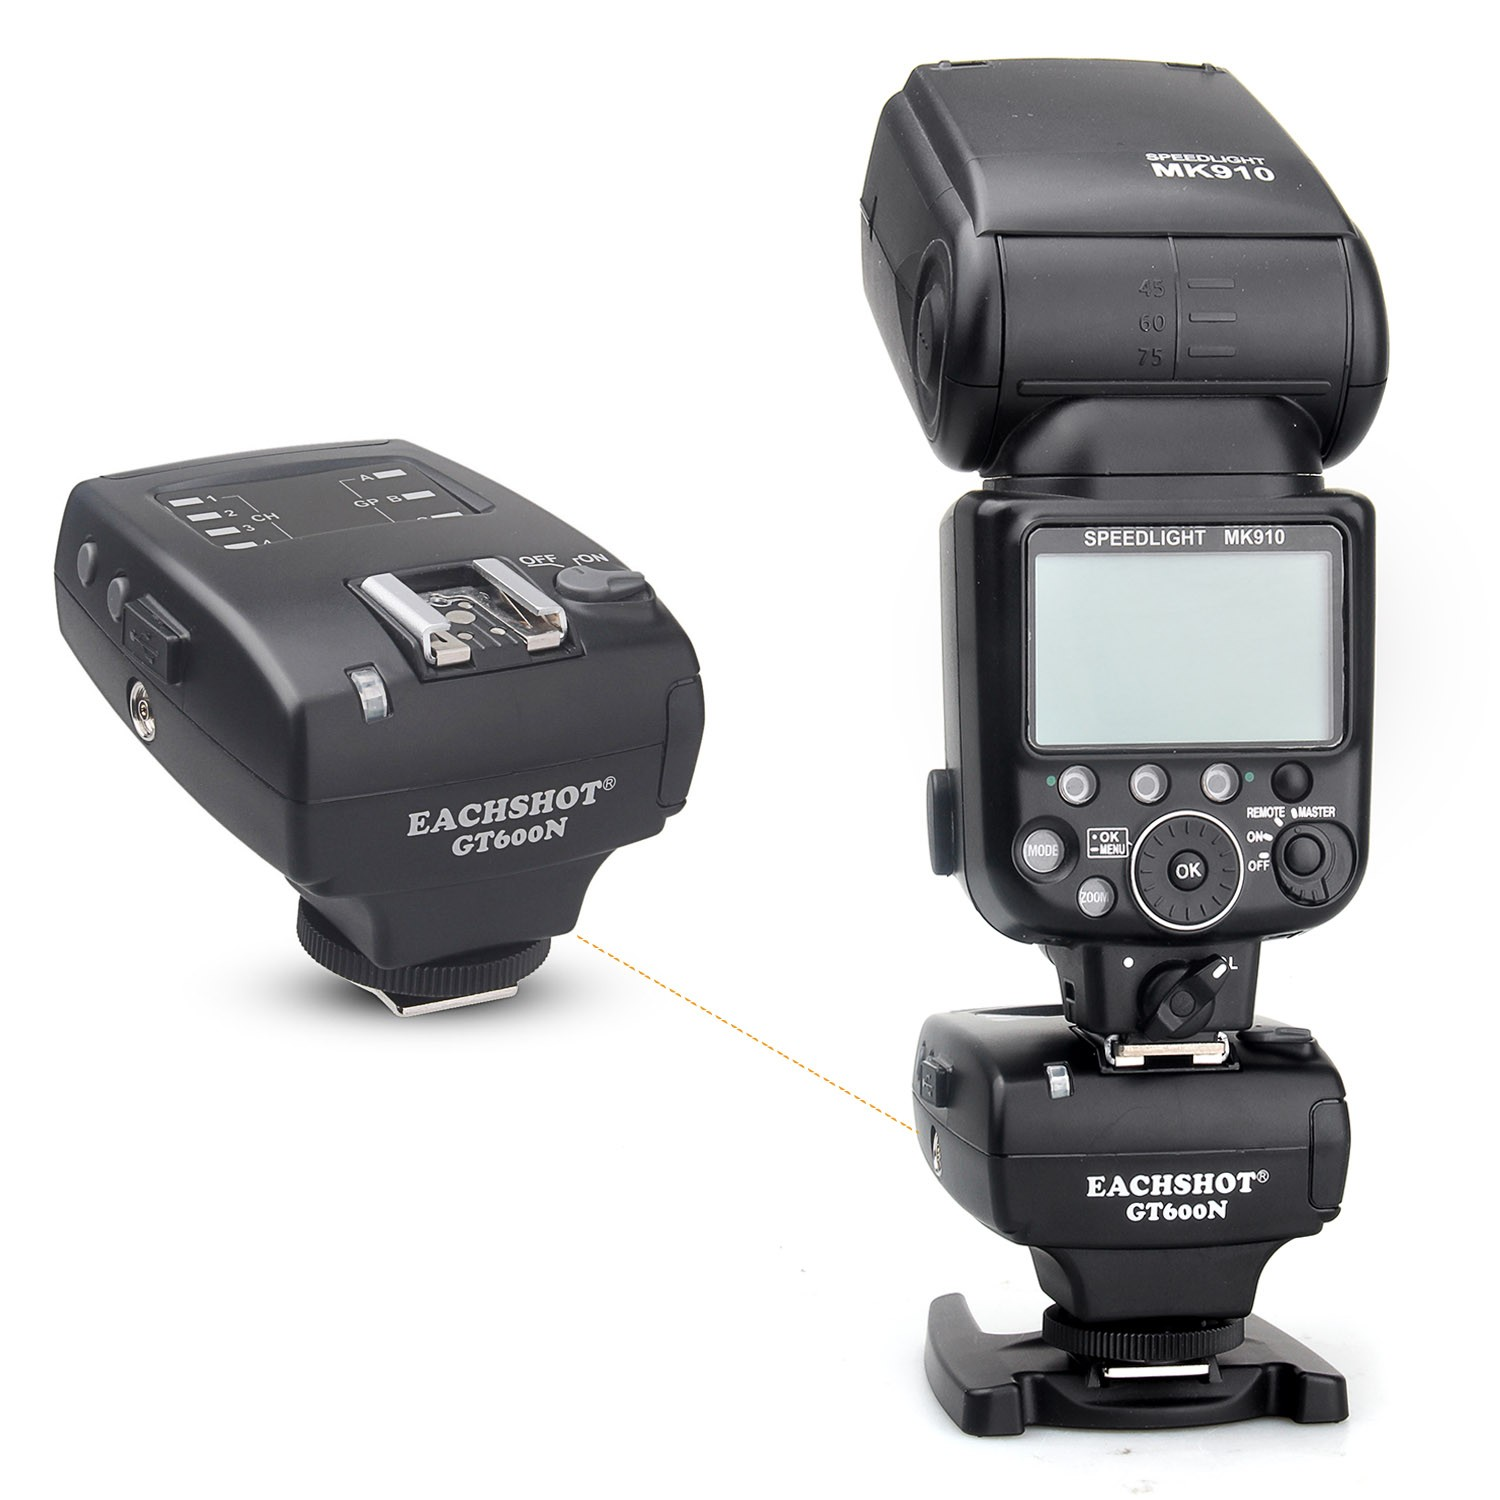 EACHSHOT GT600N GT600 iTTL 2.4Ghz 1/8000s Flash Trigger For Nikon Flash, EACHSHOT SN600N/SN600SN, MEIKE MK-910